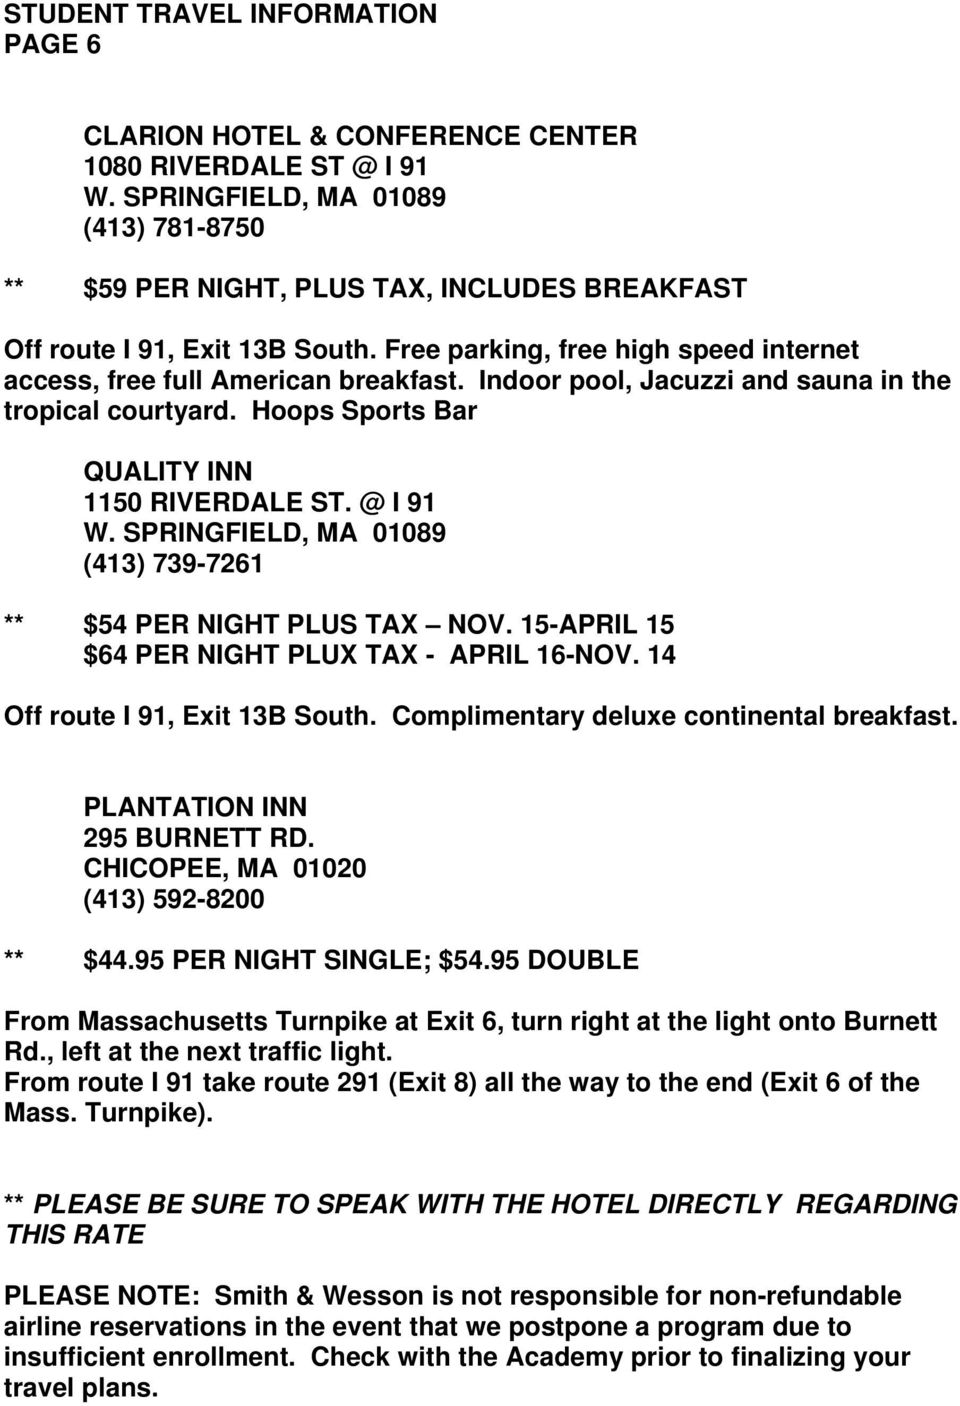 @ I 91 (413) 739-7261 ** $54 PER NIGHT PLUS TAX NOV. 15-APRIL 15 $64 PER NIGHT PLUX TAX - APRIL 16-NOV. 14 Off route I 91, Exit 13B South. Complimentary deluxe continental breakfast.